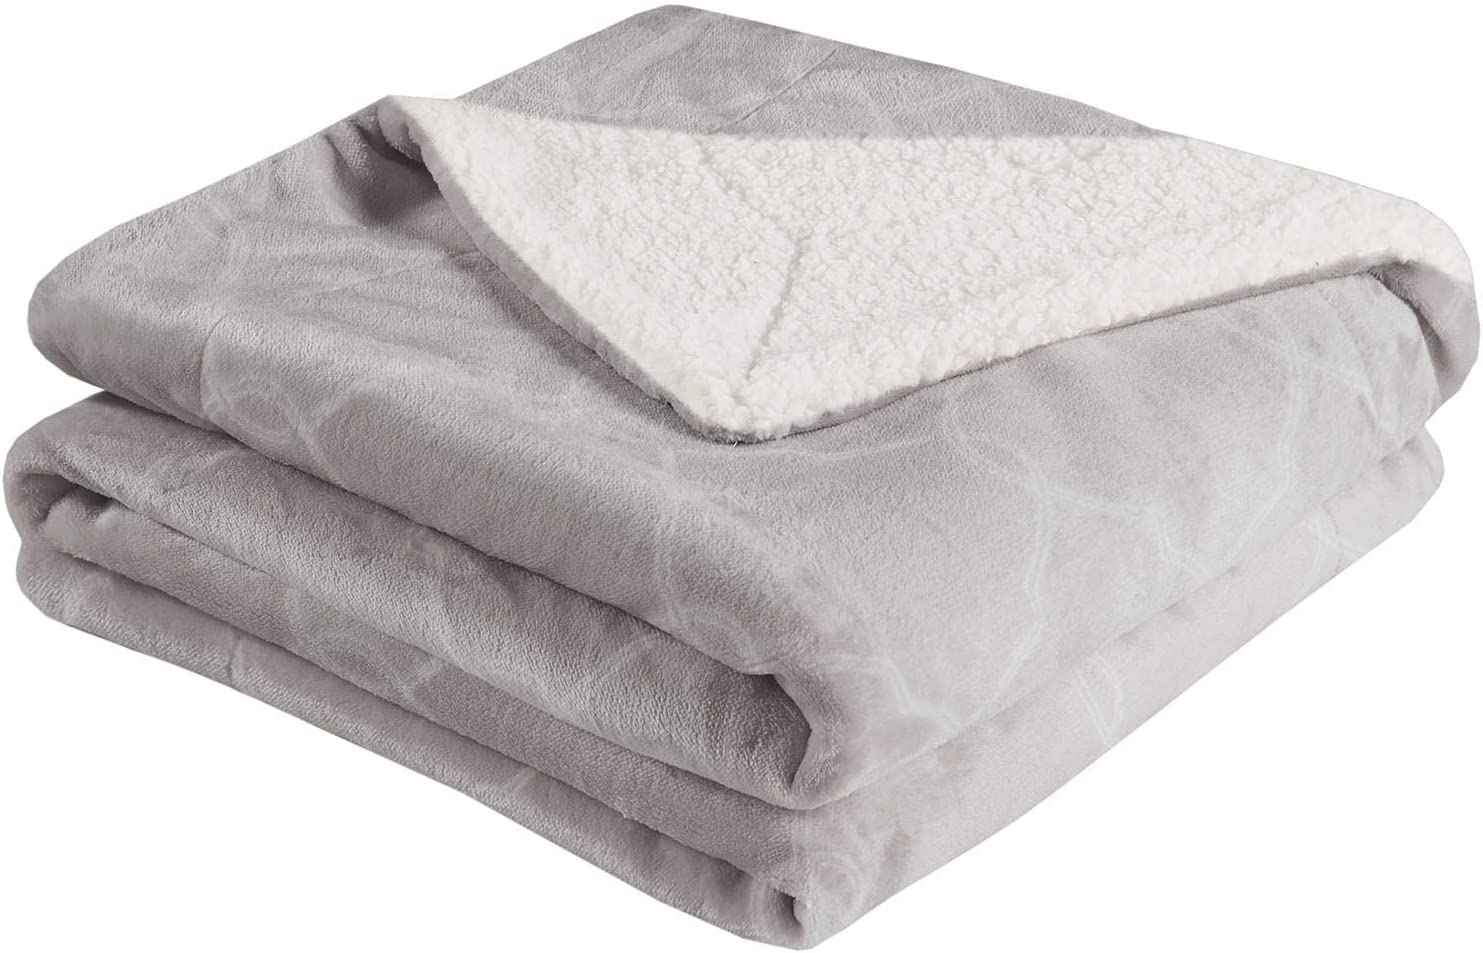 MP2 Cozy Fleece Sherpa Blanket Throw - Fuzzy Plush Flannel Blanket for Sofa, Couch, Bed, Travel - 50x60 Inches, Grey Ogee